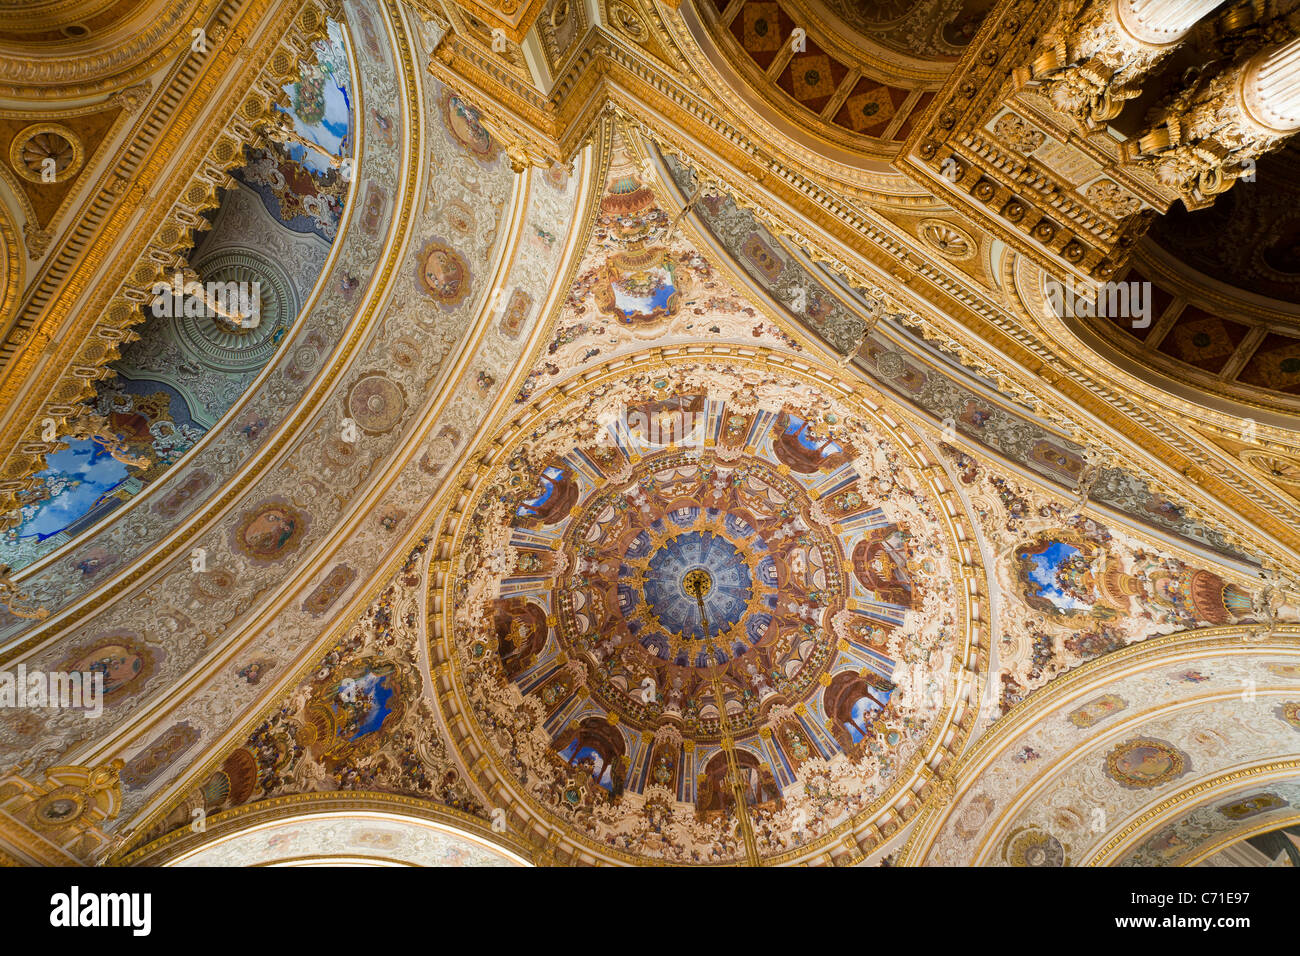 The dome of the Ceremonial Hall of Dolmabahce Palace. The domed and decorated ceiling above the ballroom. Stock Photo